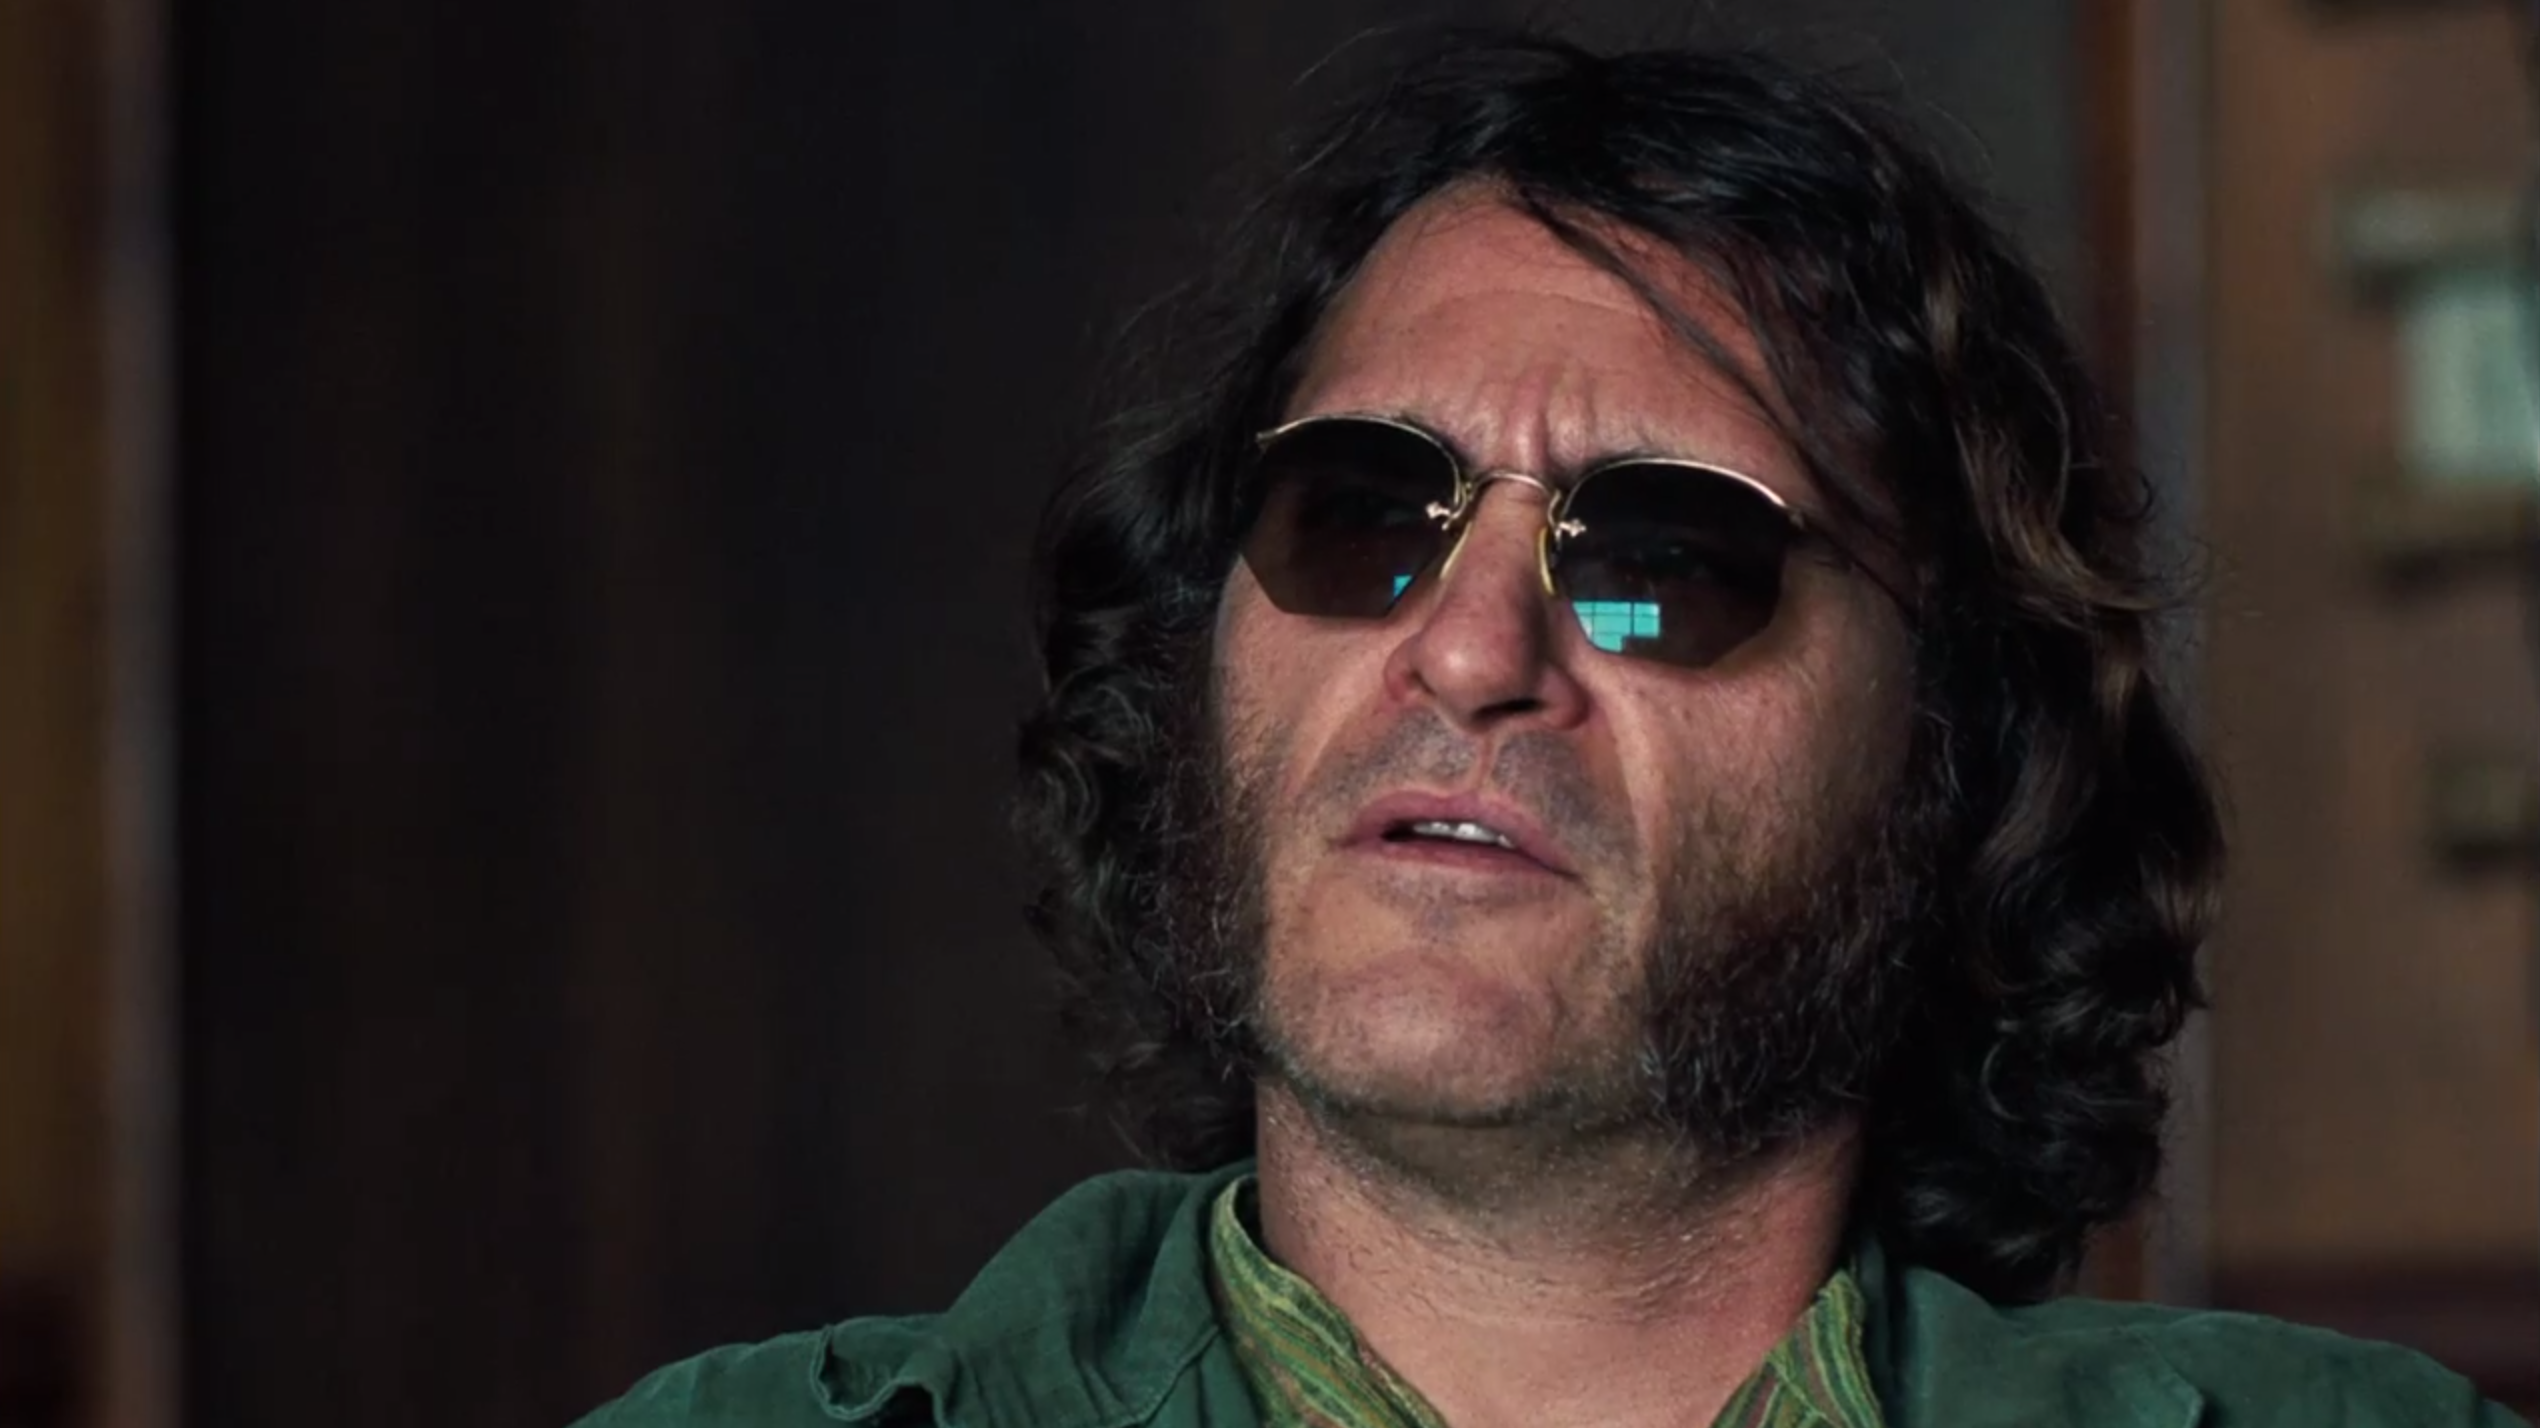 Inherent vice out at the pictures